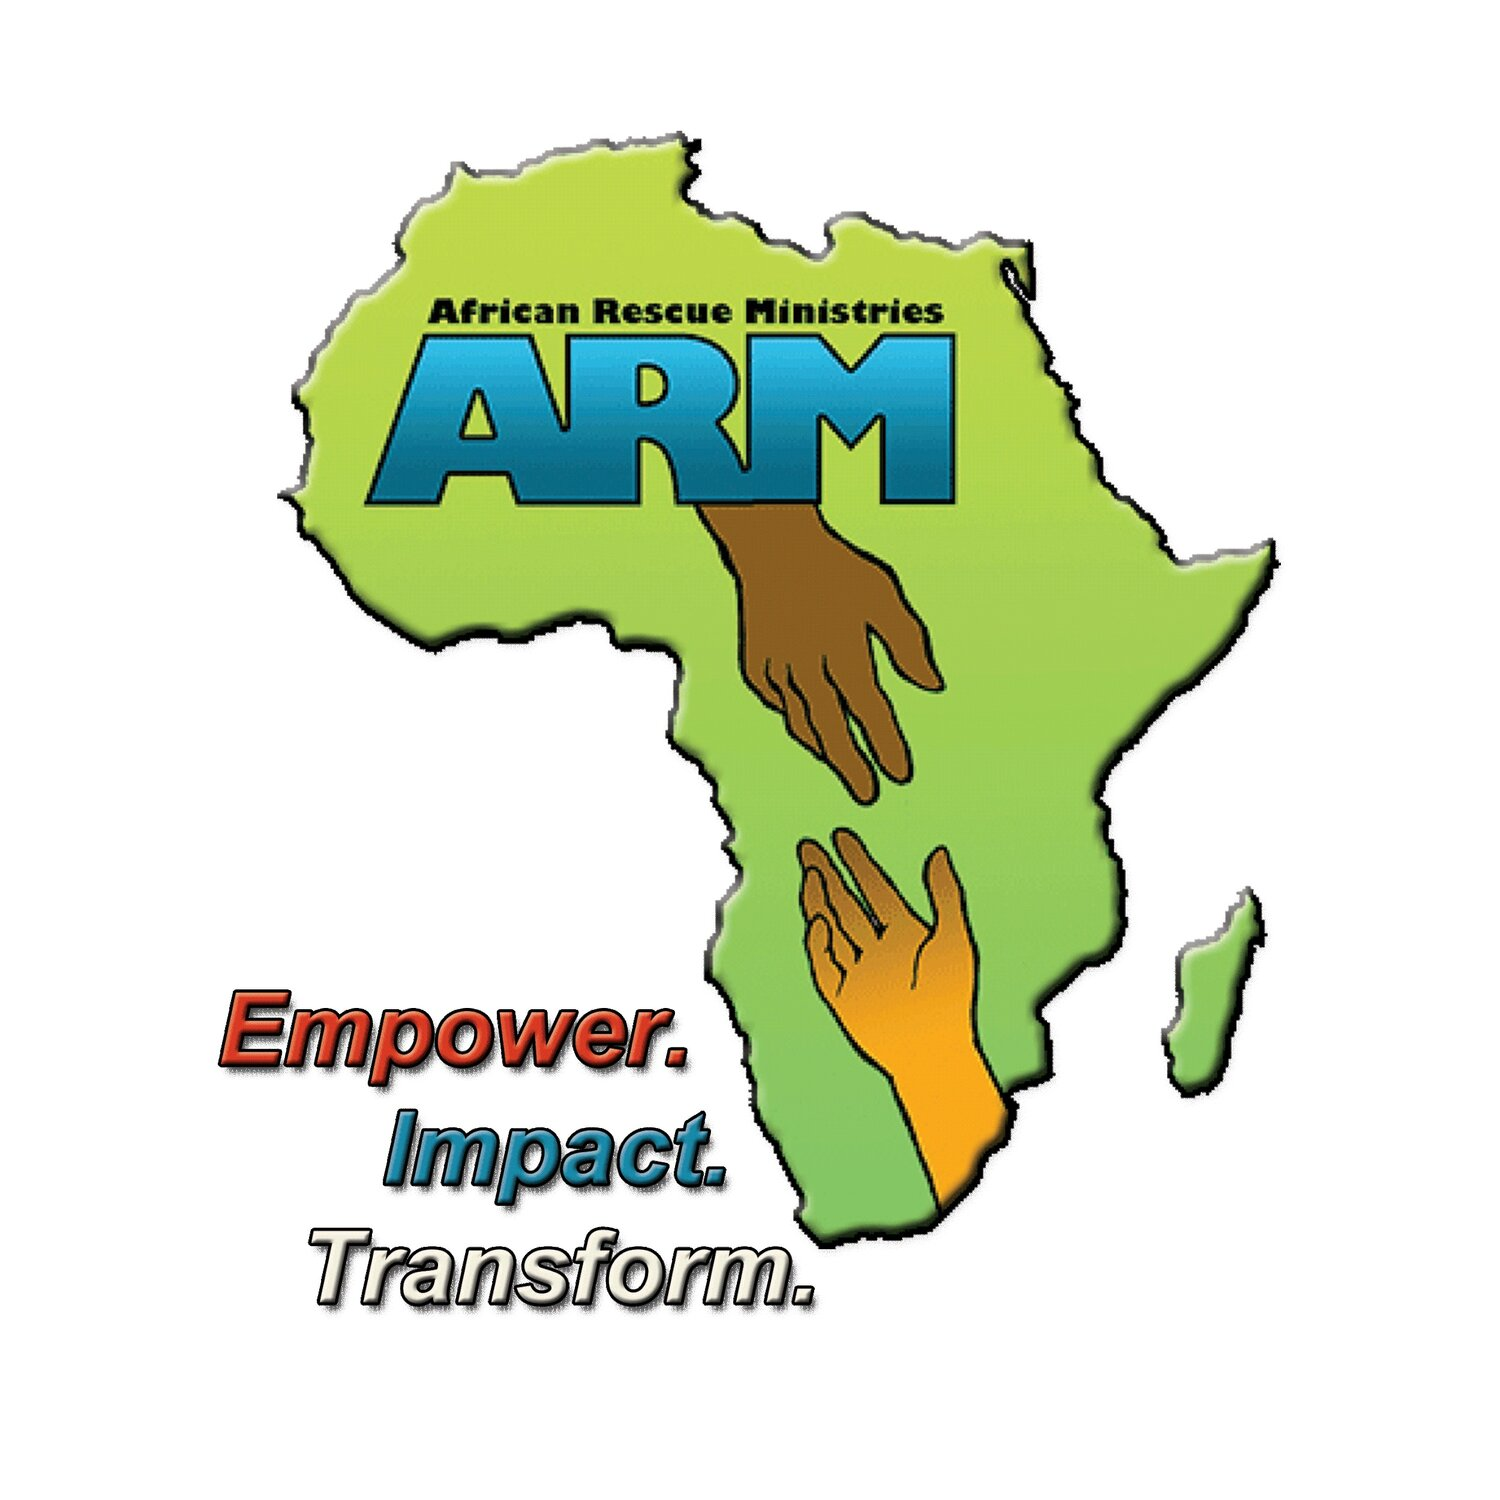 African Rescue Ministries